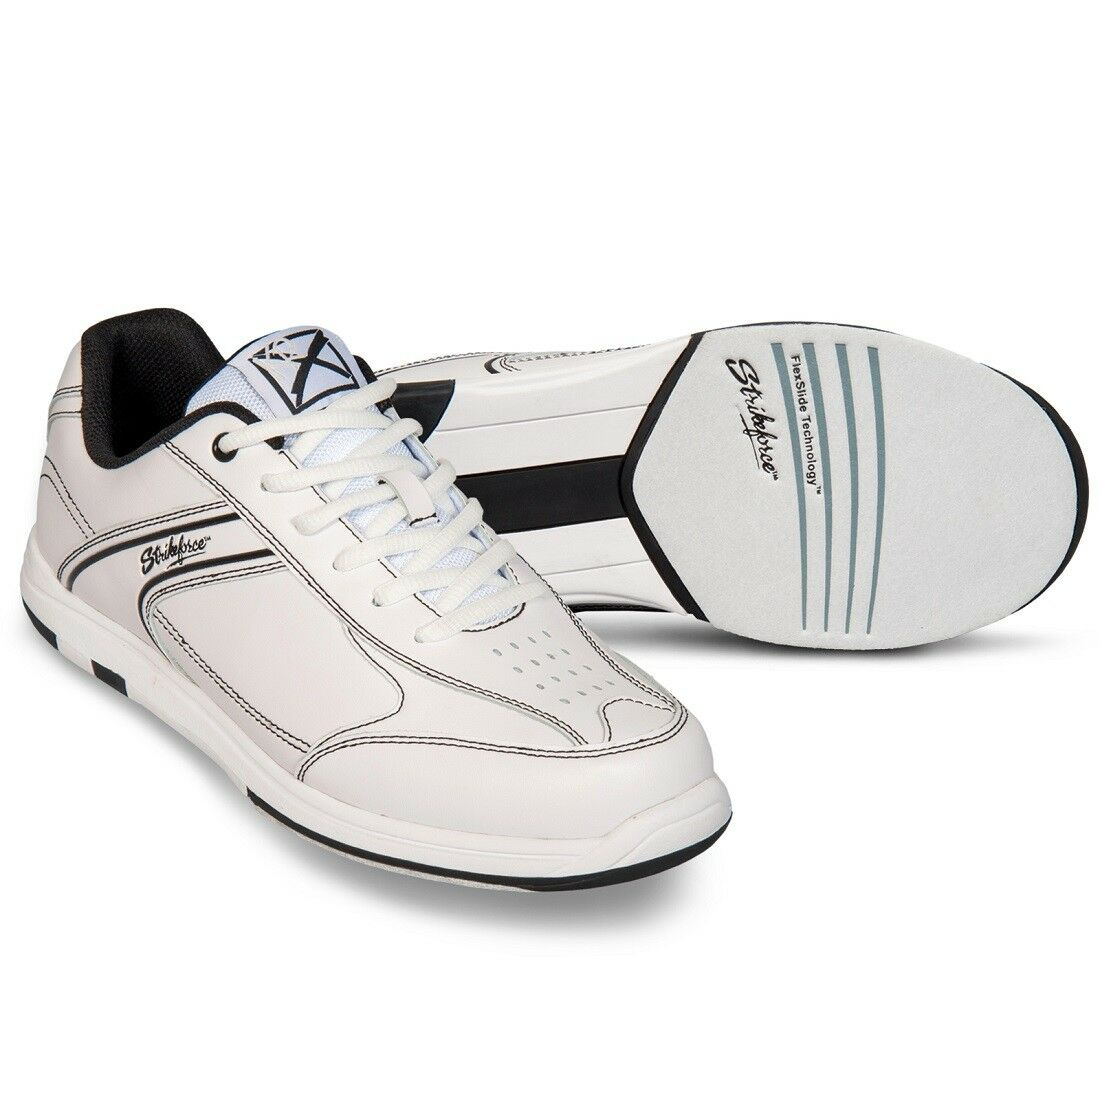 Mens KR Strikeforce White Flyer Bowling shoes Size 7 - 14